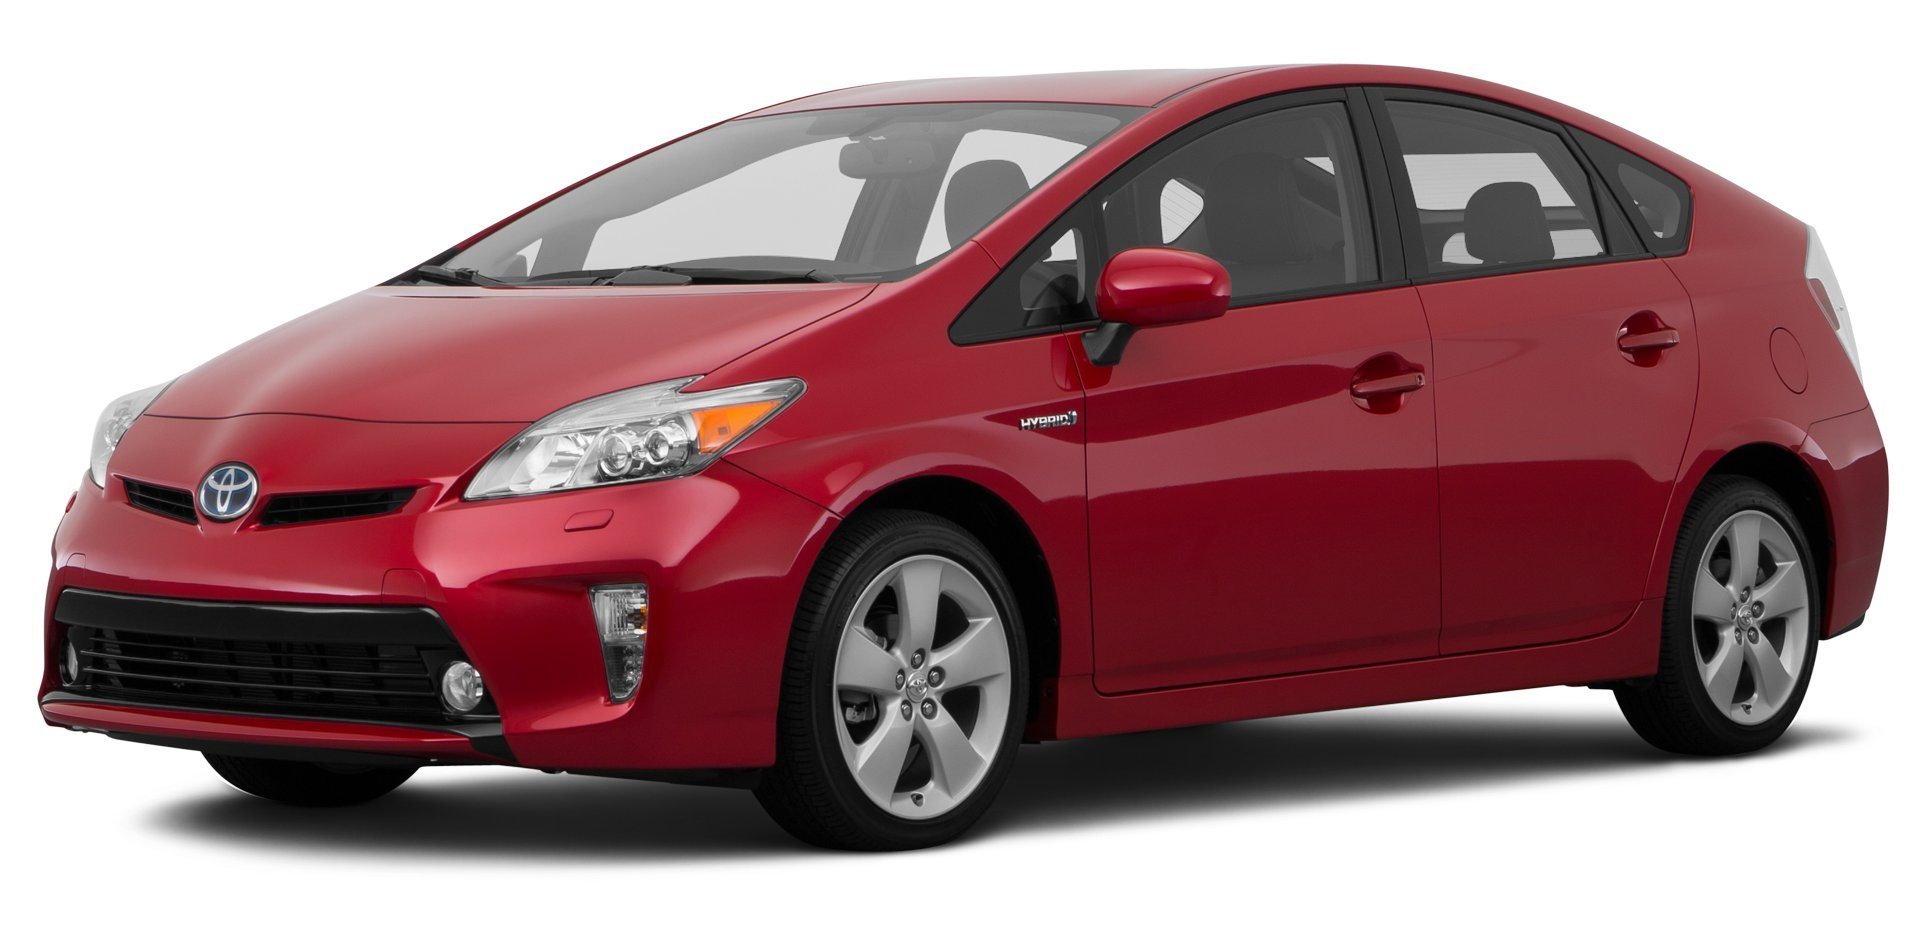 2015 toyota prius reviews images and specs vehicles. Black Bedroom Furniture Sets. Home Design Ideas